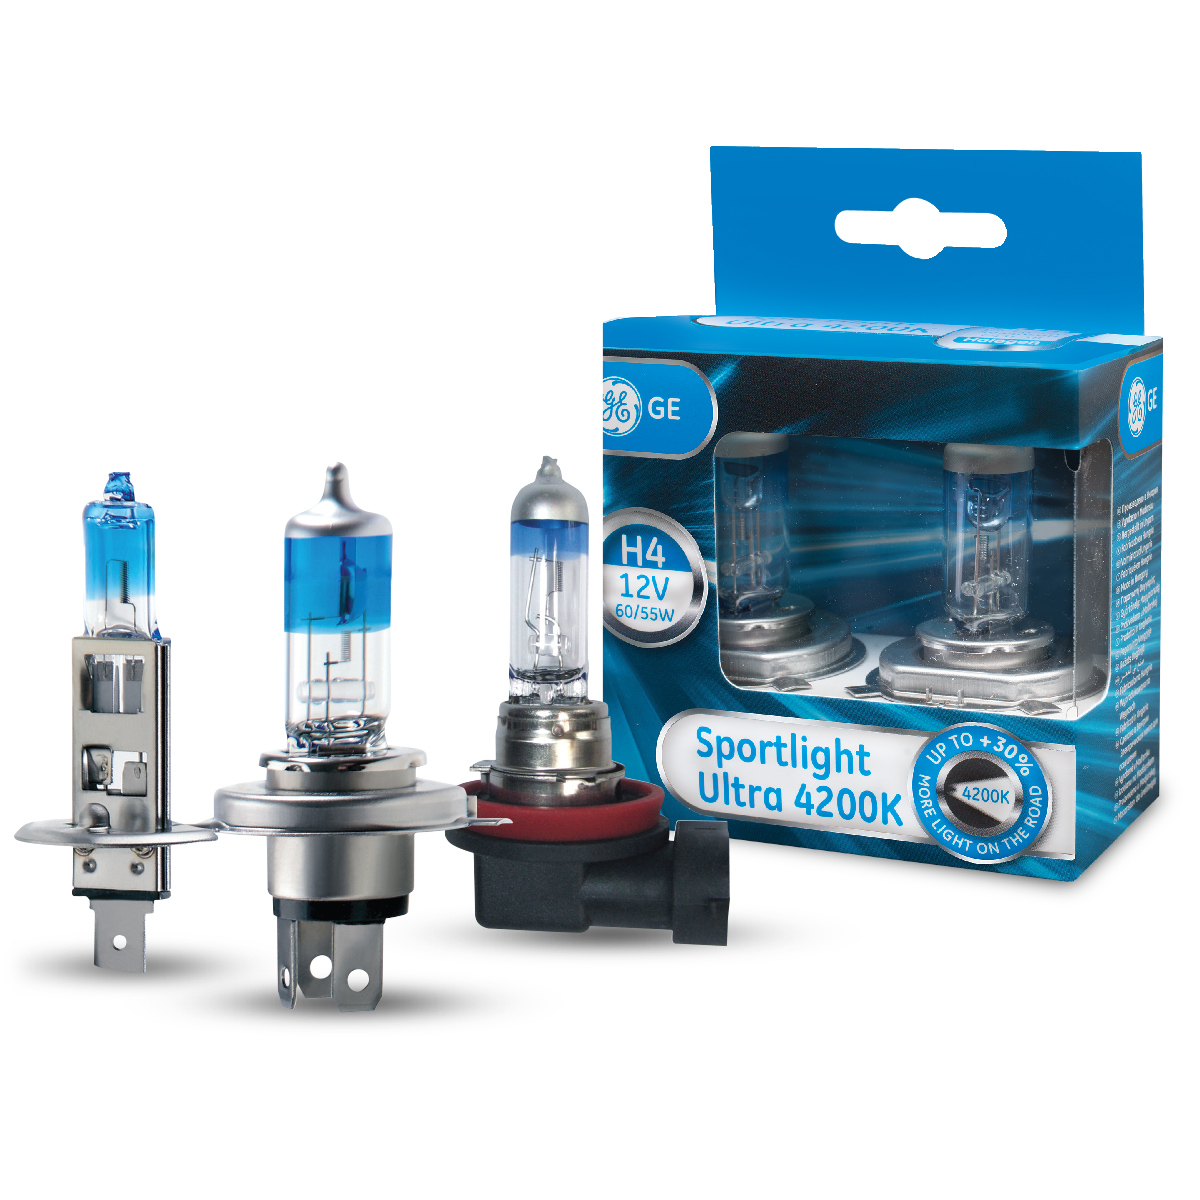 Halogen Headlight Upgrade Bulbs – Sportlight Ultra 4200K